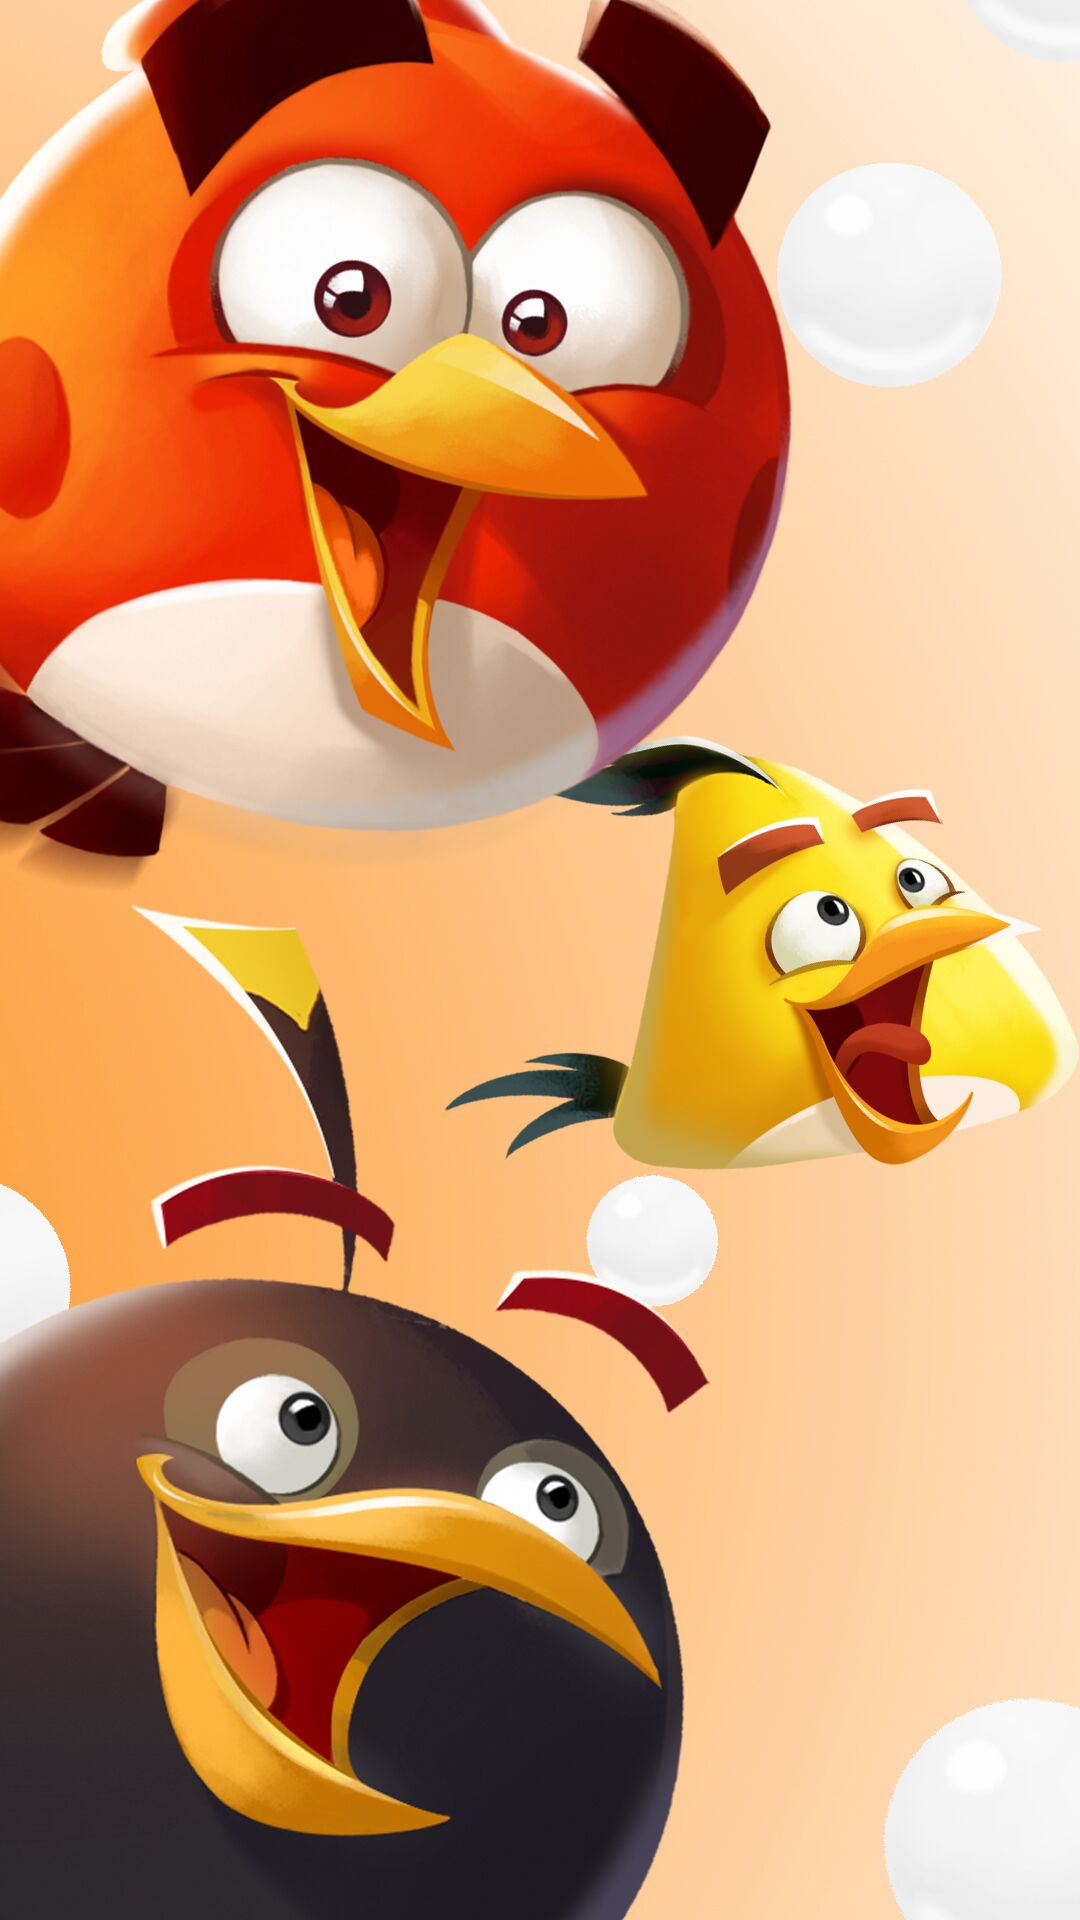 angry birds winter phone wallpapers for holidays - youloveit